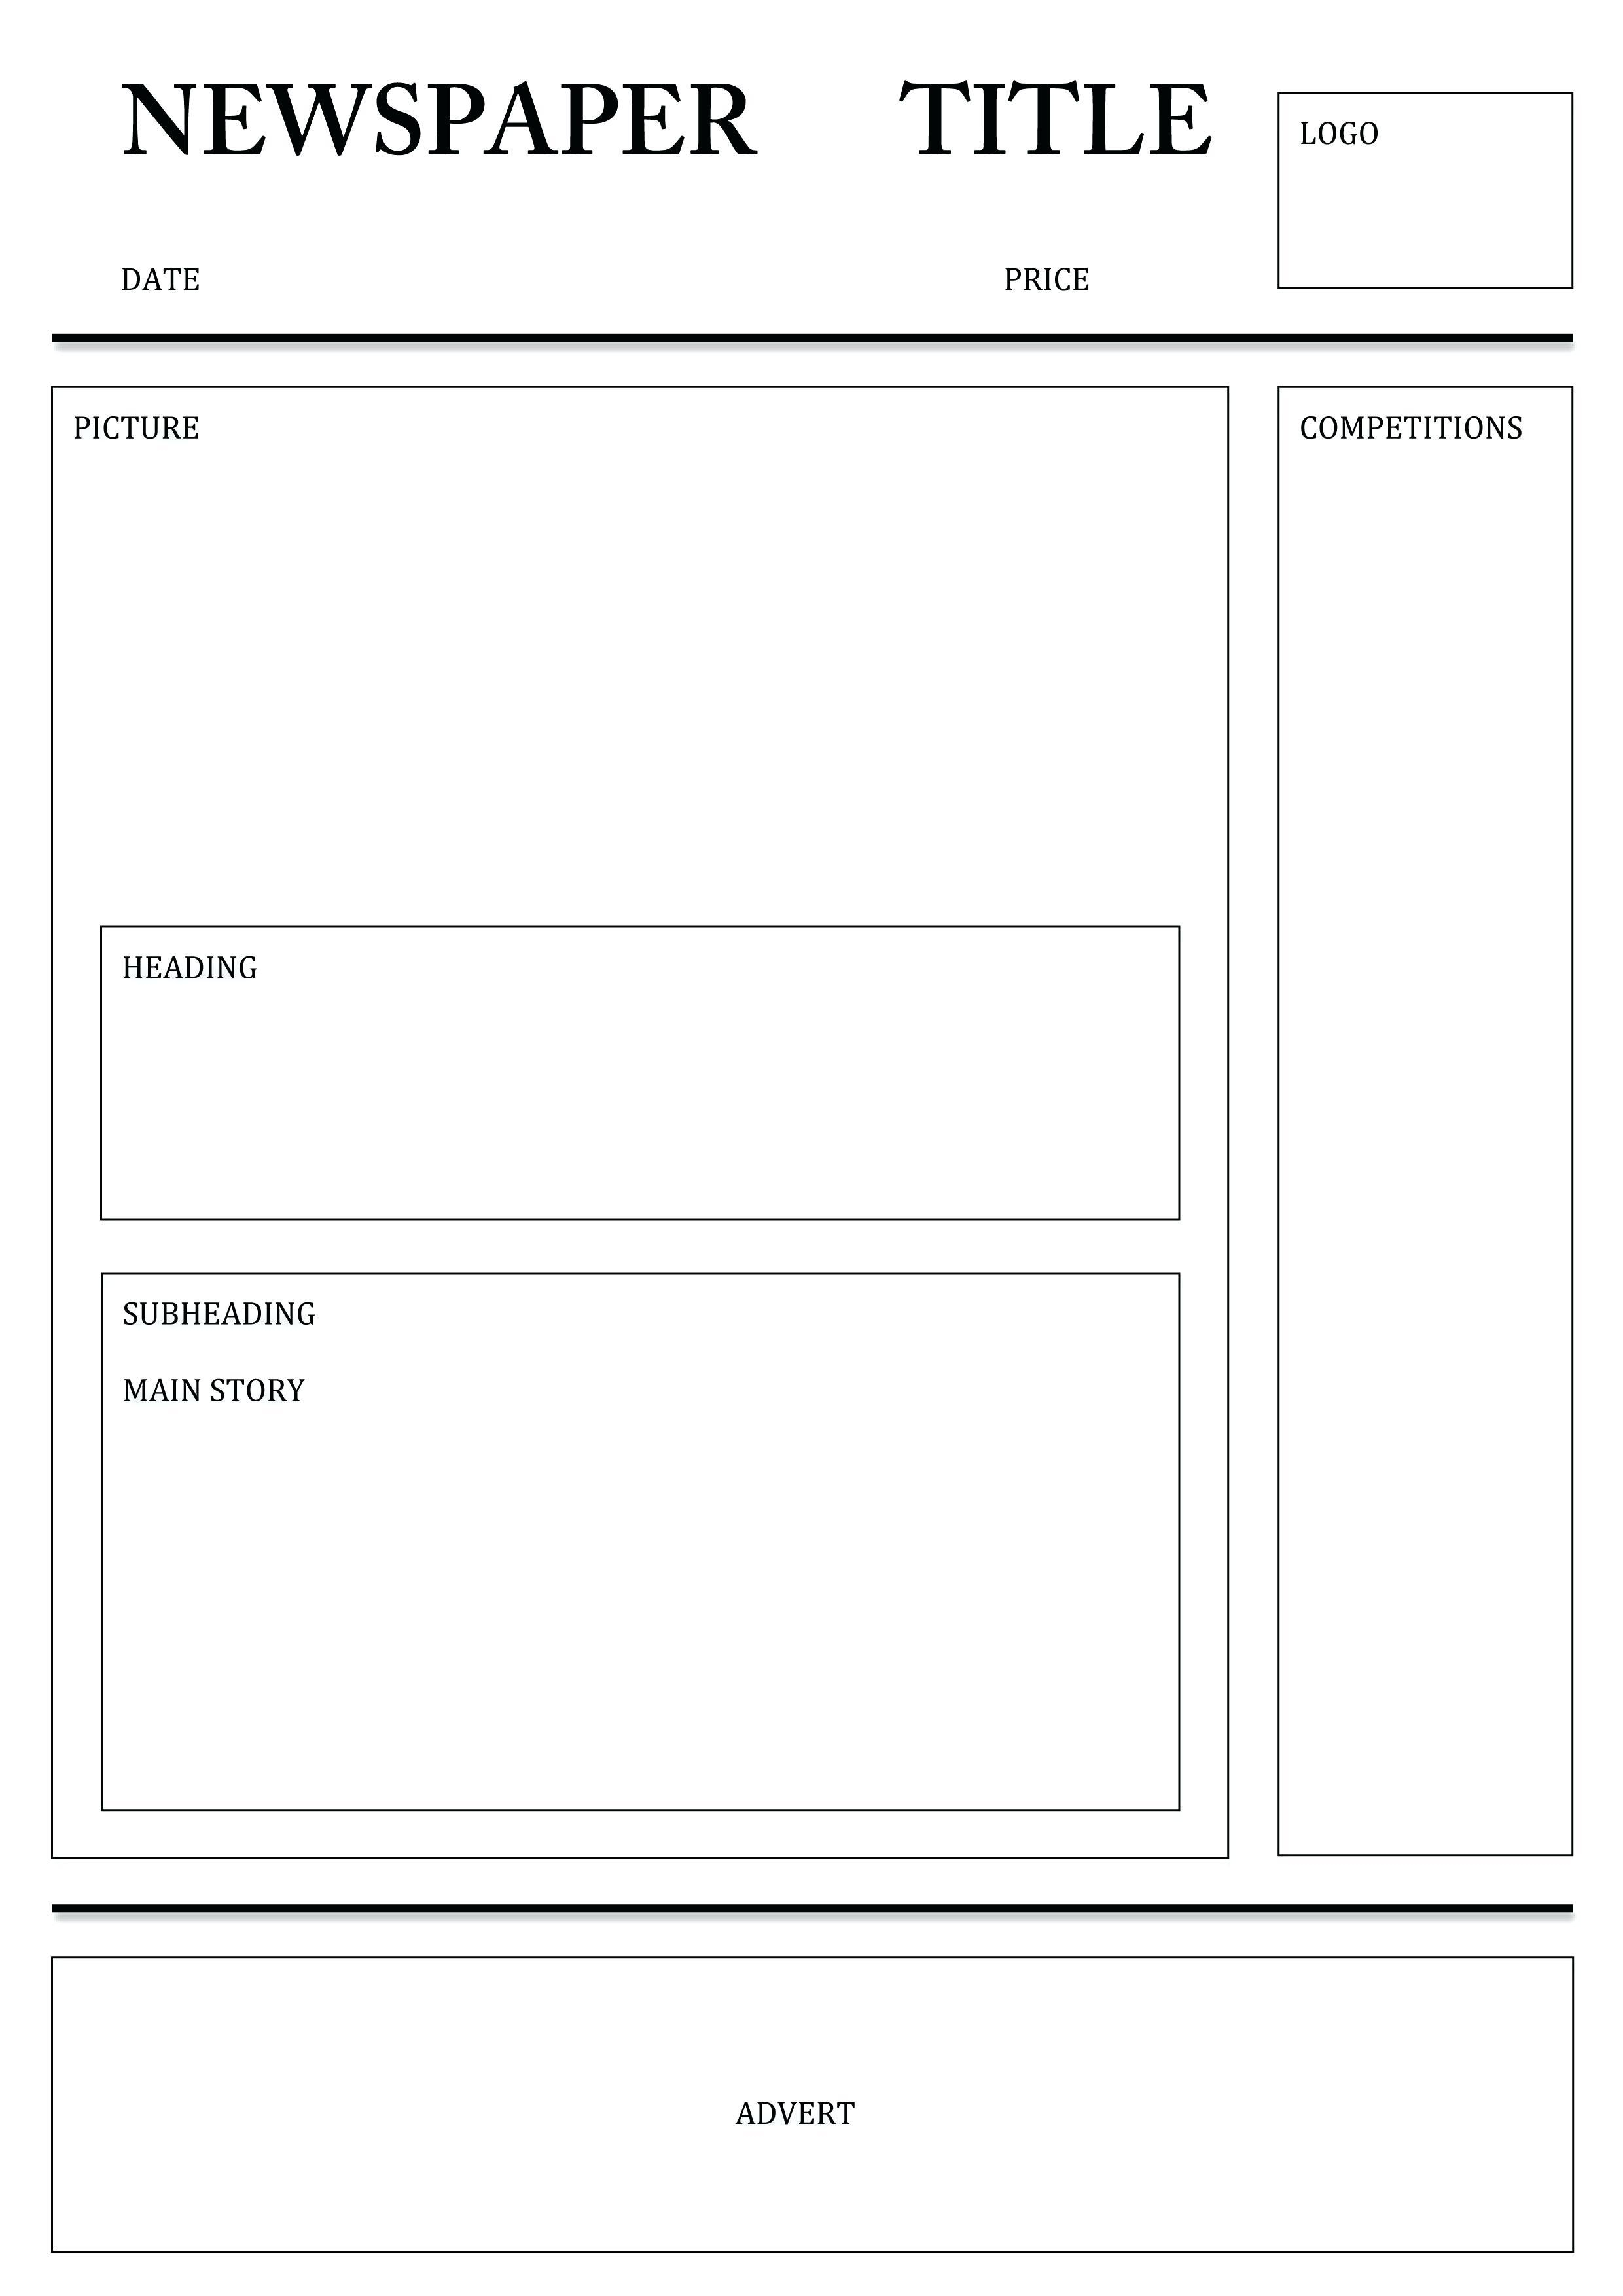 Newspaper Template for Word PDF Excel